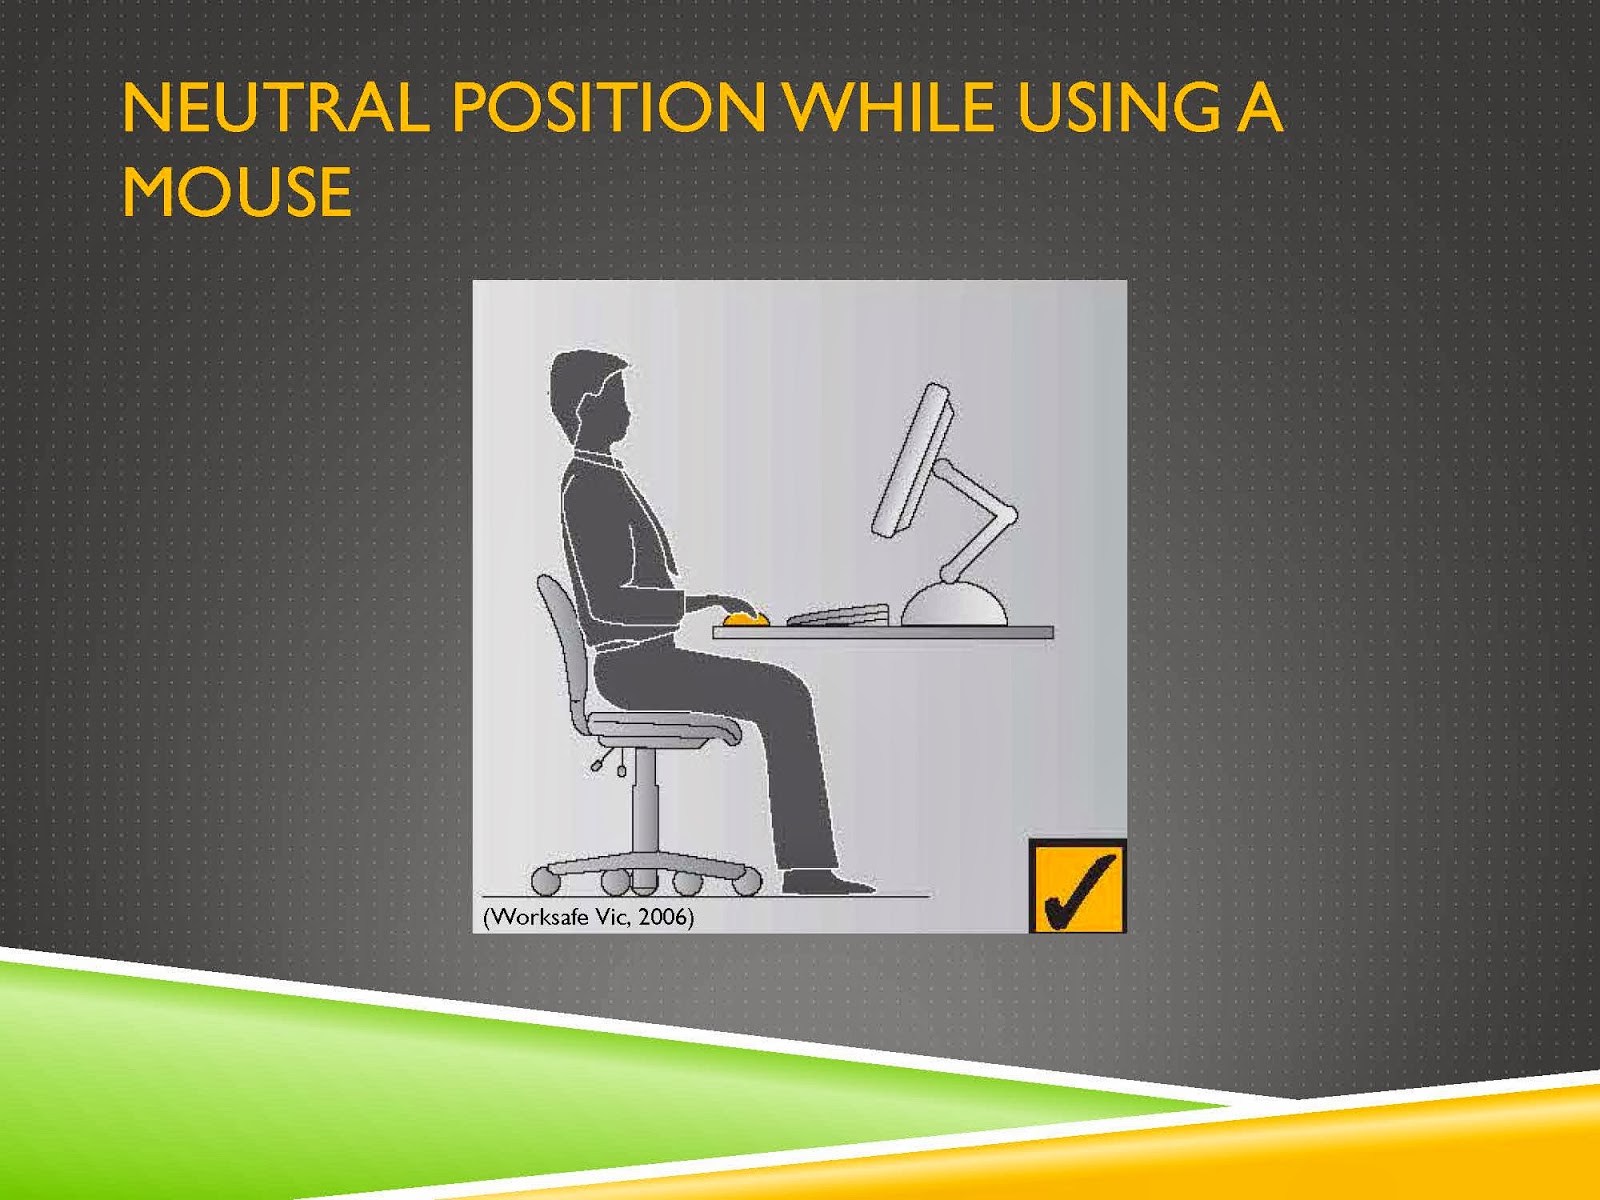 NEUTRAL MOUSE POSITION